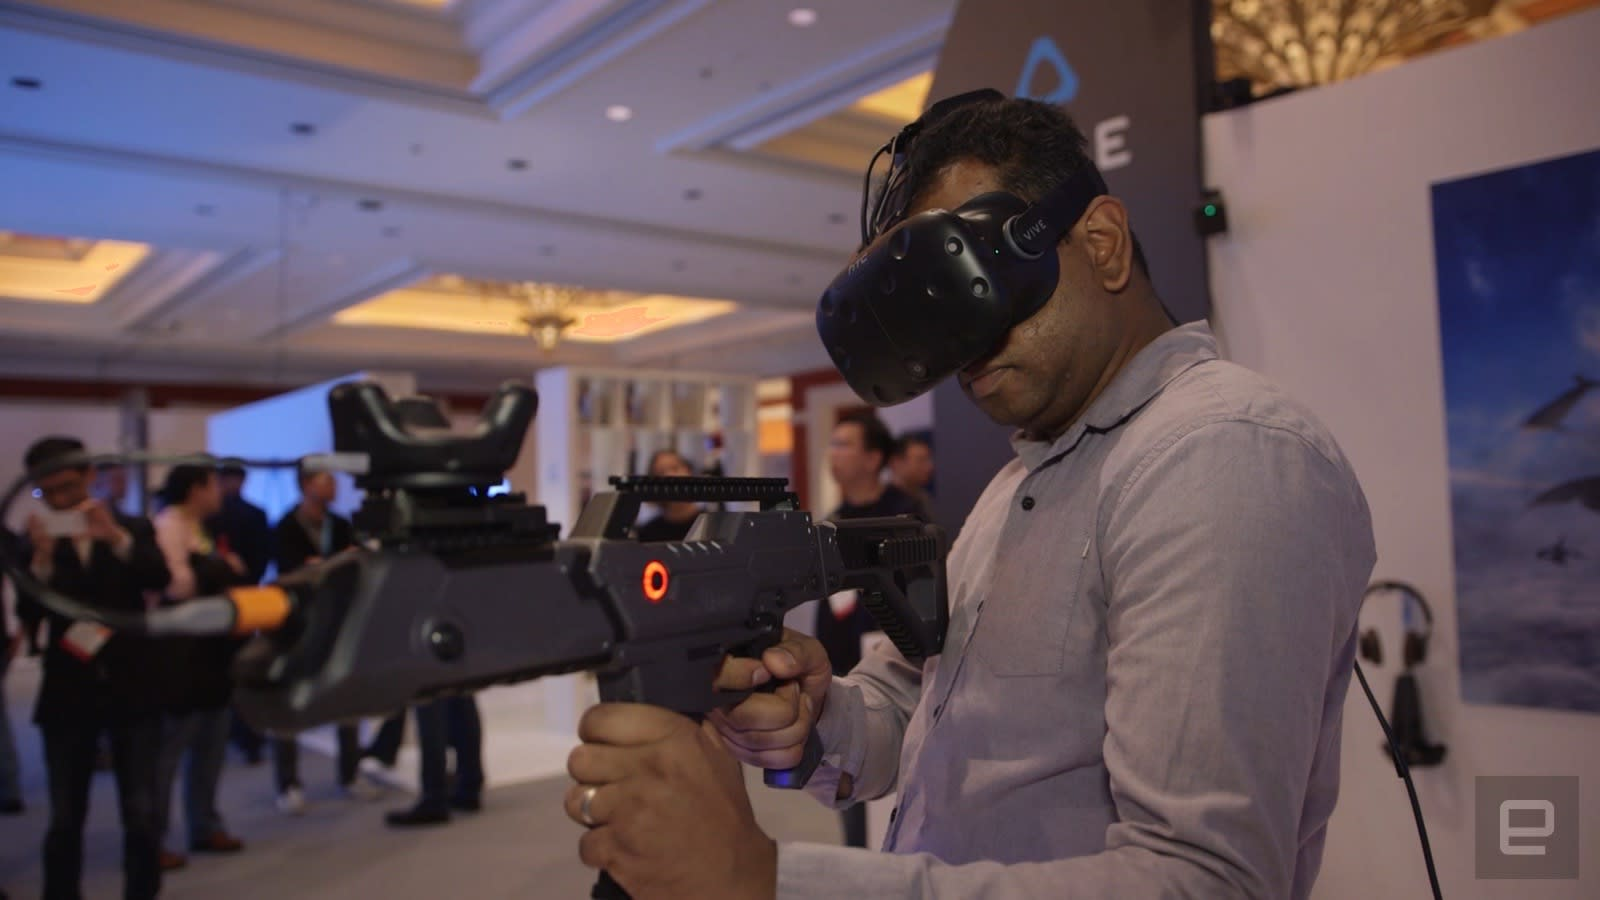 Watch HTC Vive's wireless VR adapter and object tracker in action